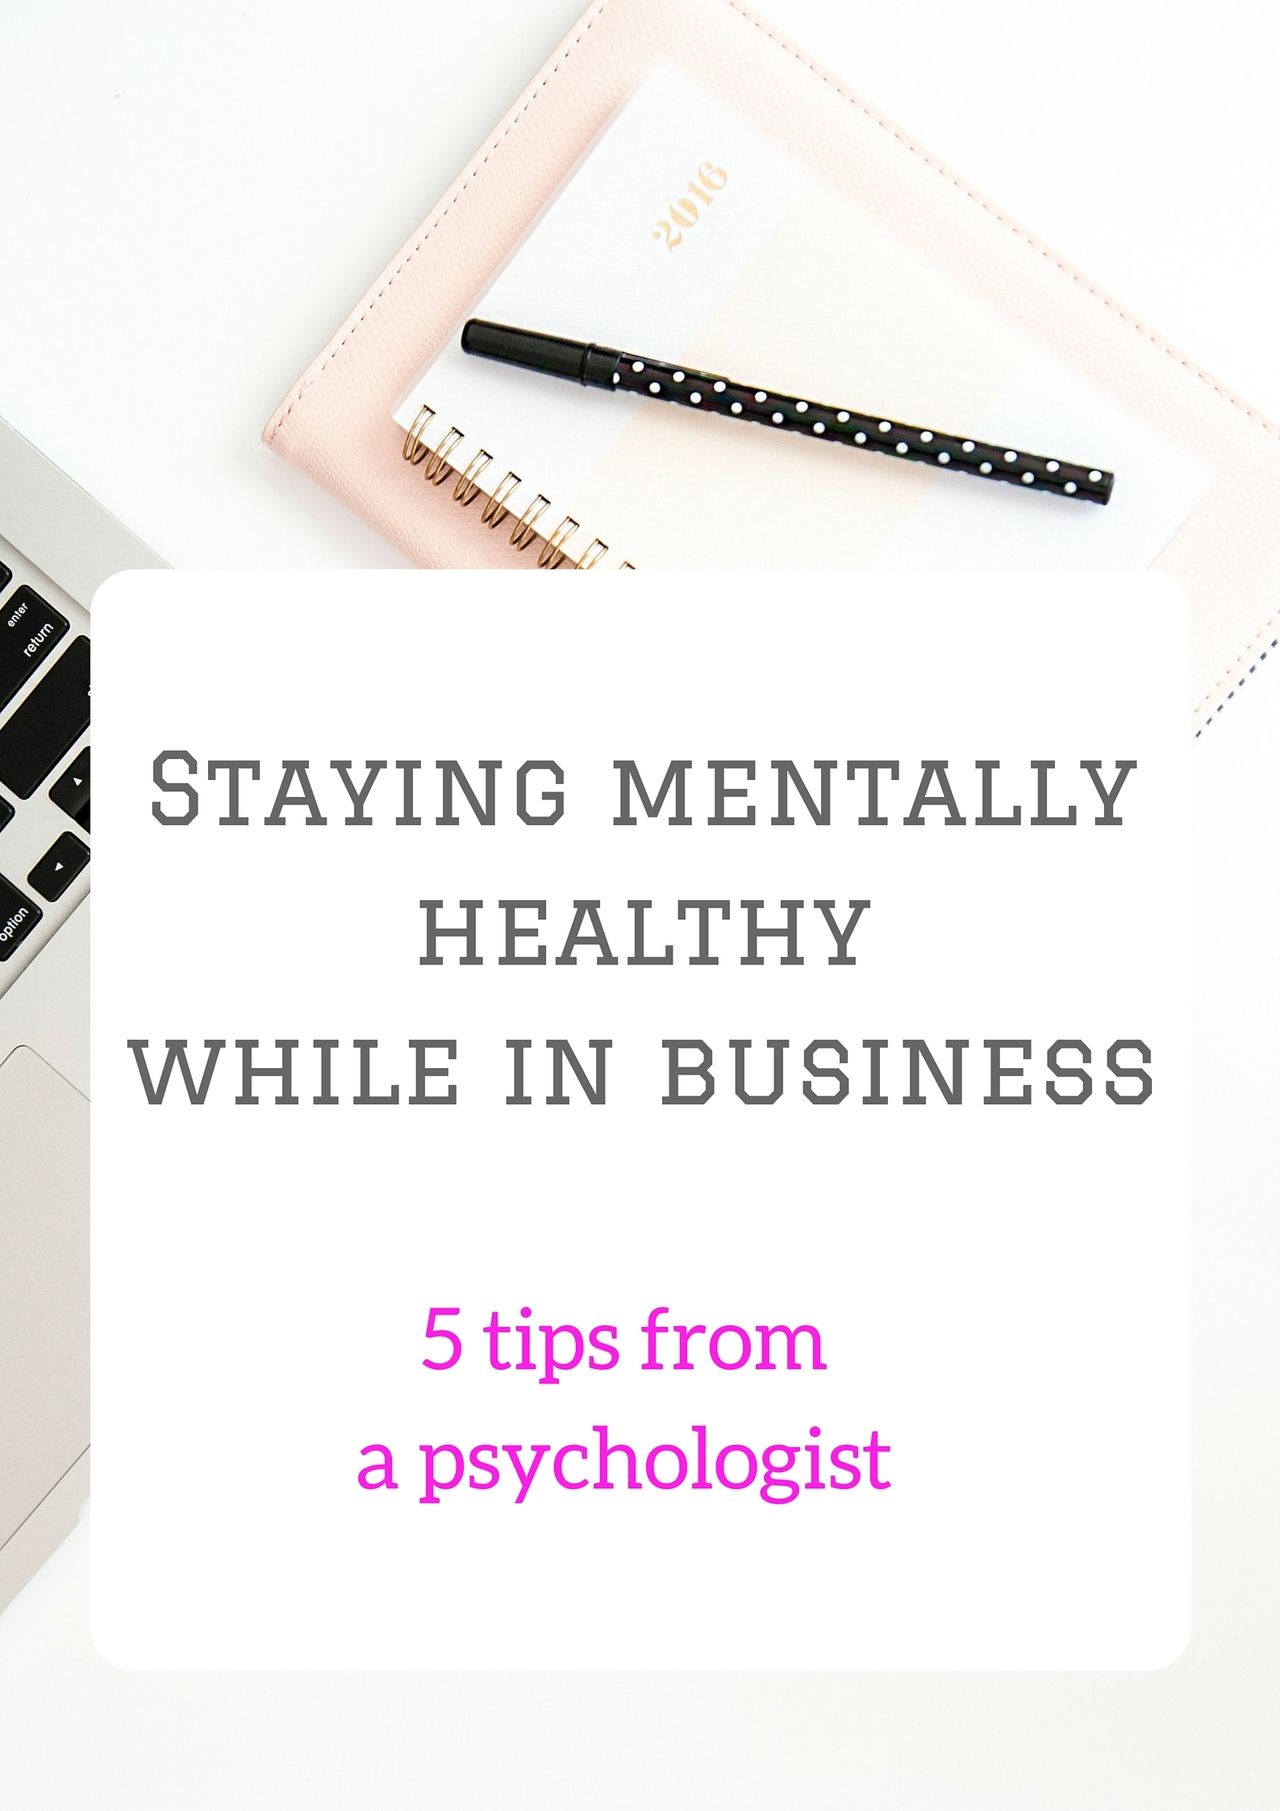 5 steps to stay mentally healthy as an entrepreneur